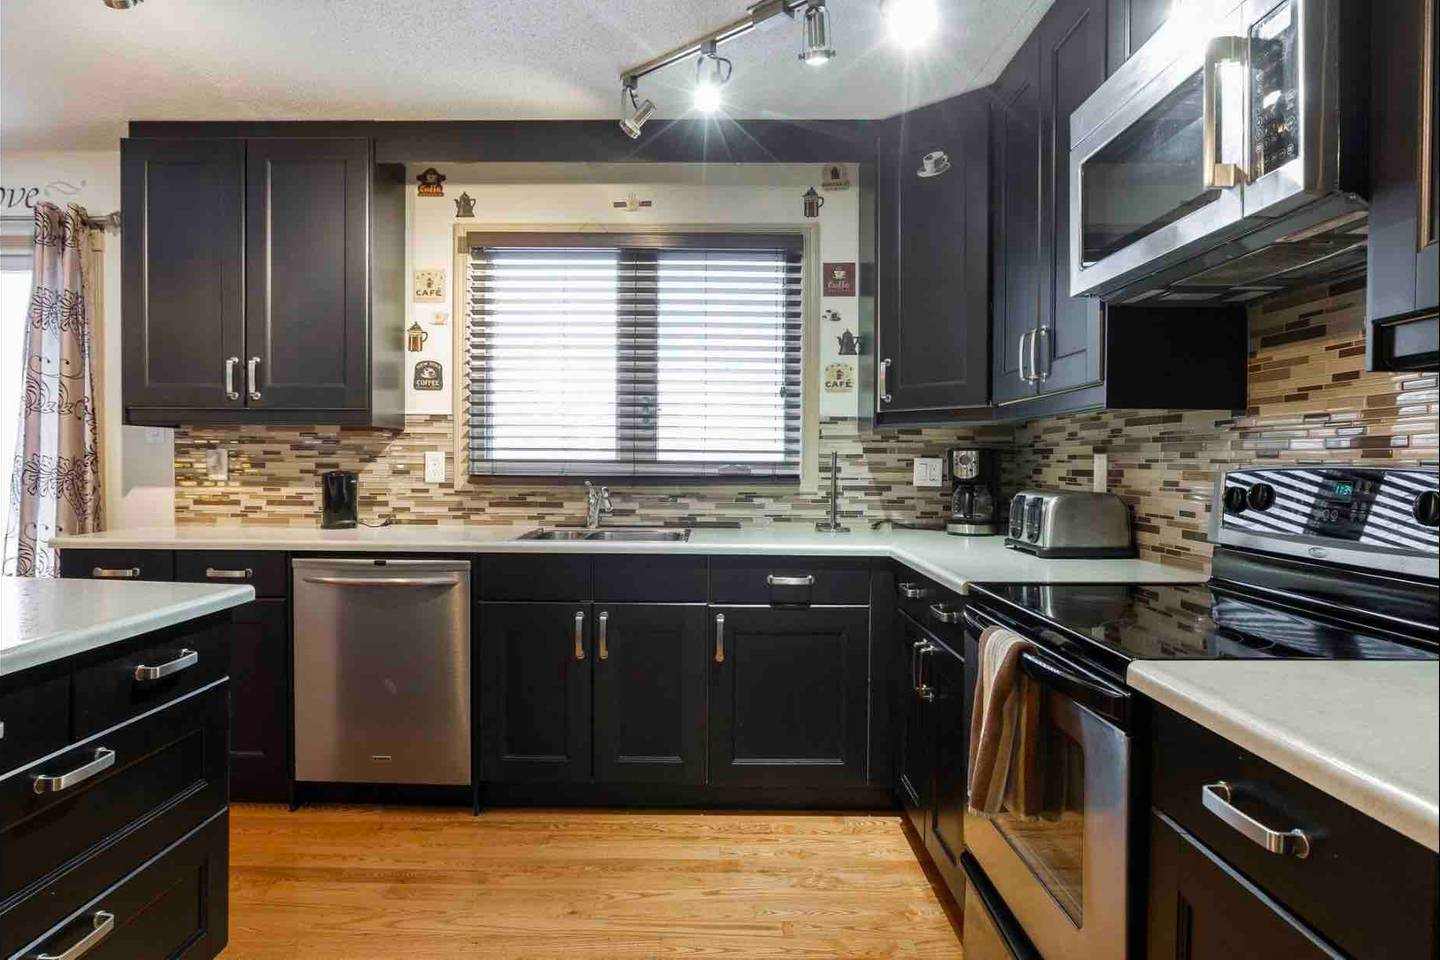 Apartment REST EASY - 6 MINS FROM WEST ED MALL - 3 BEDROOMS photo 19226996